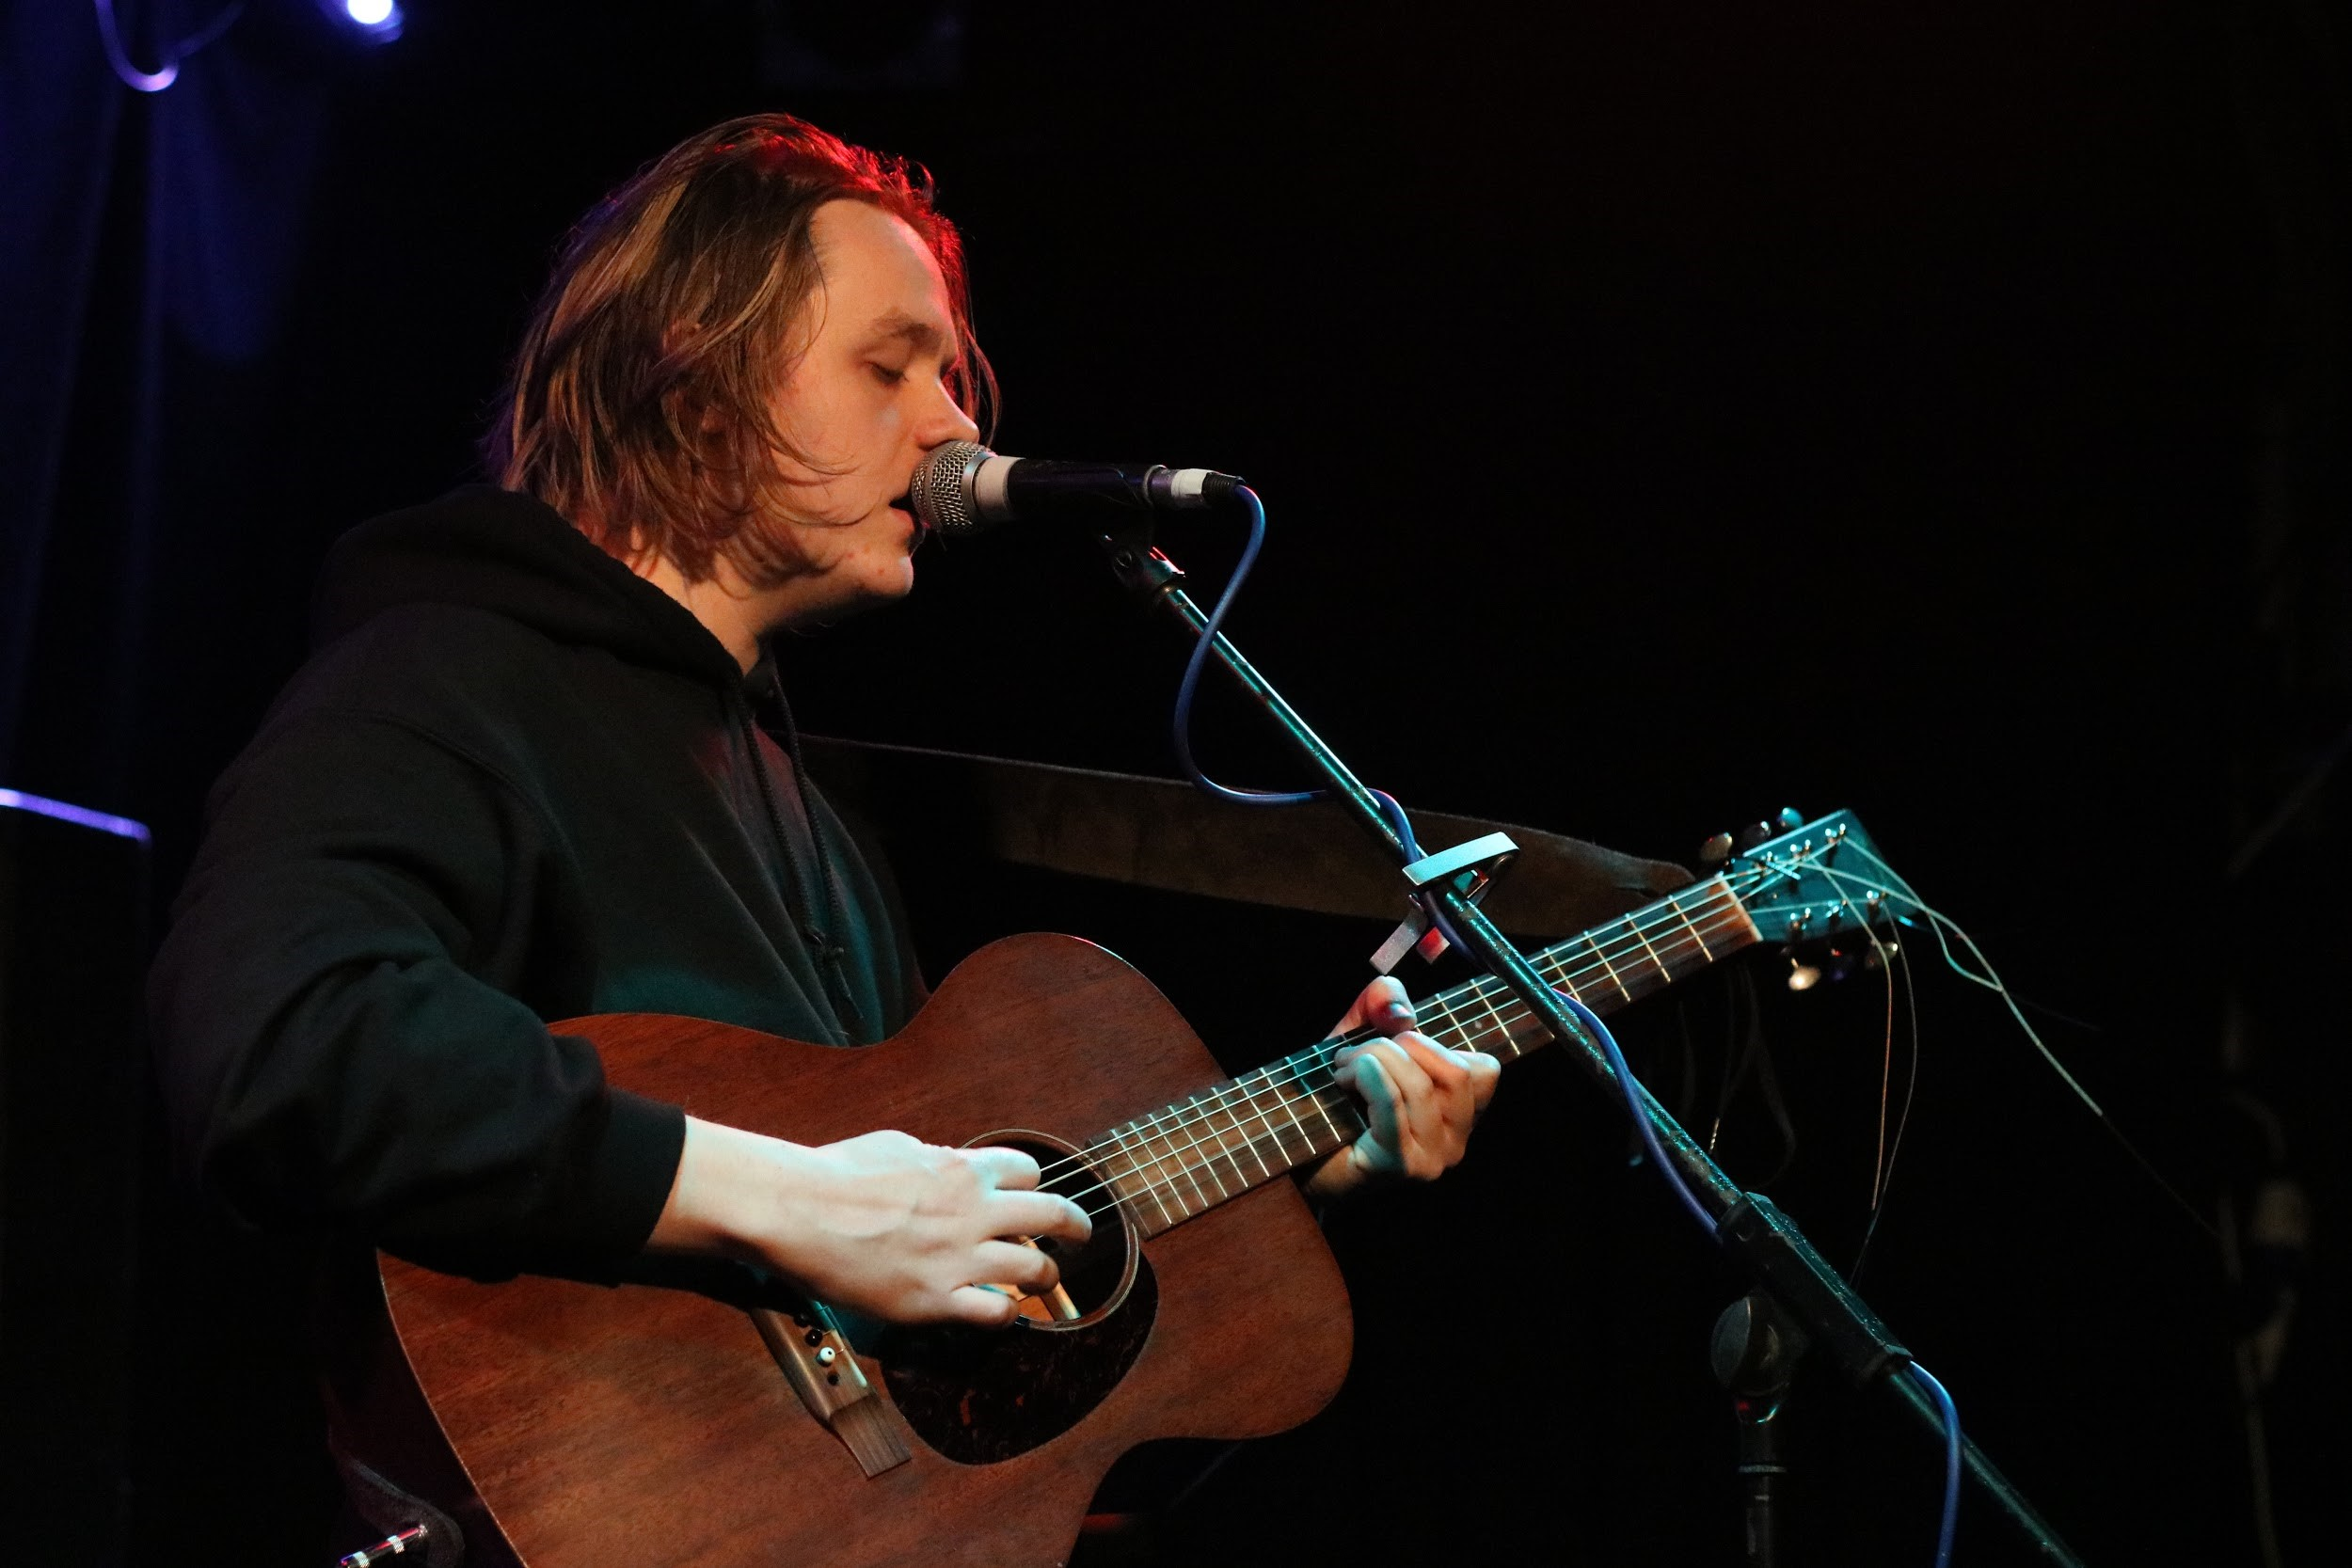 LEWIS CAPALDI PERFORMING AT ABERDEEN'S TUNNELS - 12/04/2017  PICTURE BY: COREY MCKAY